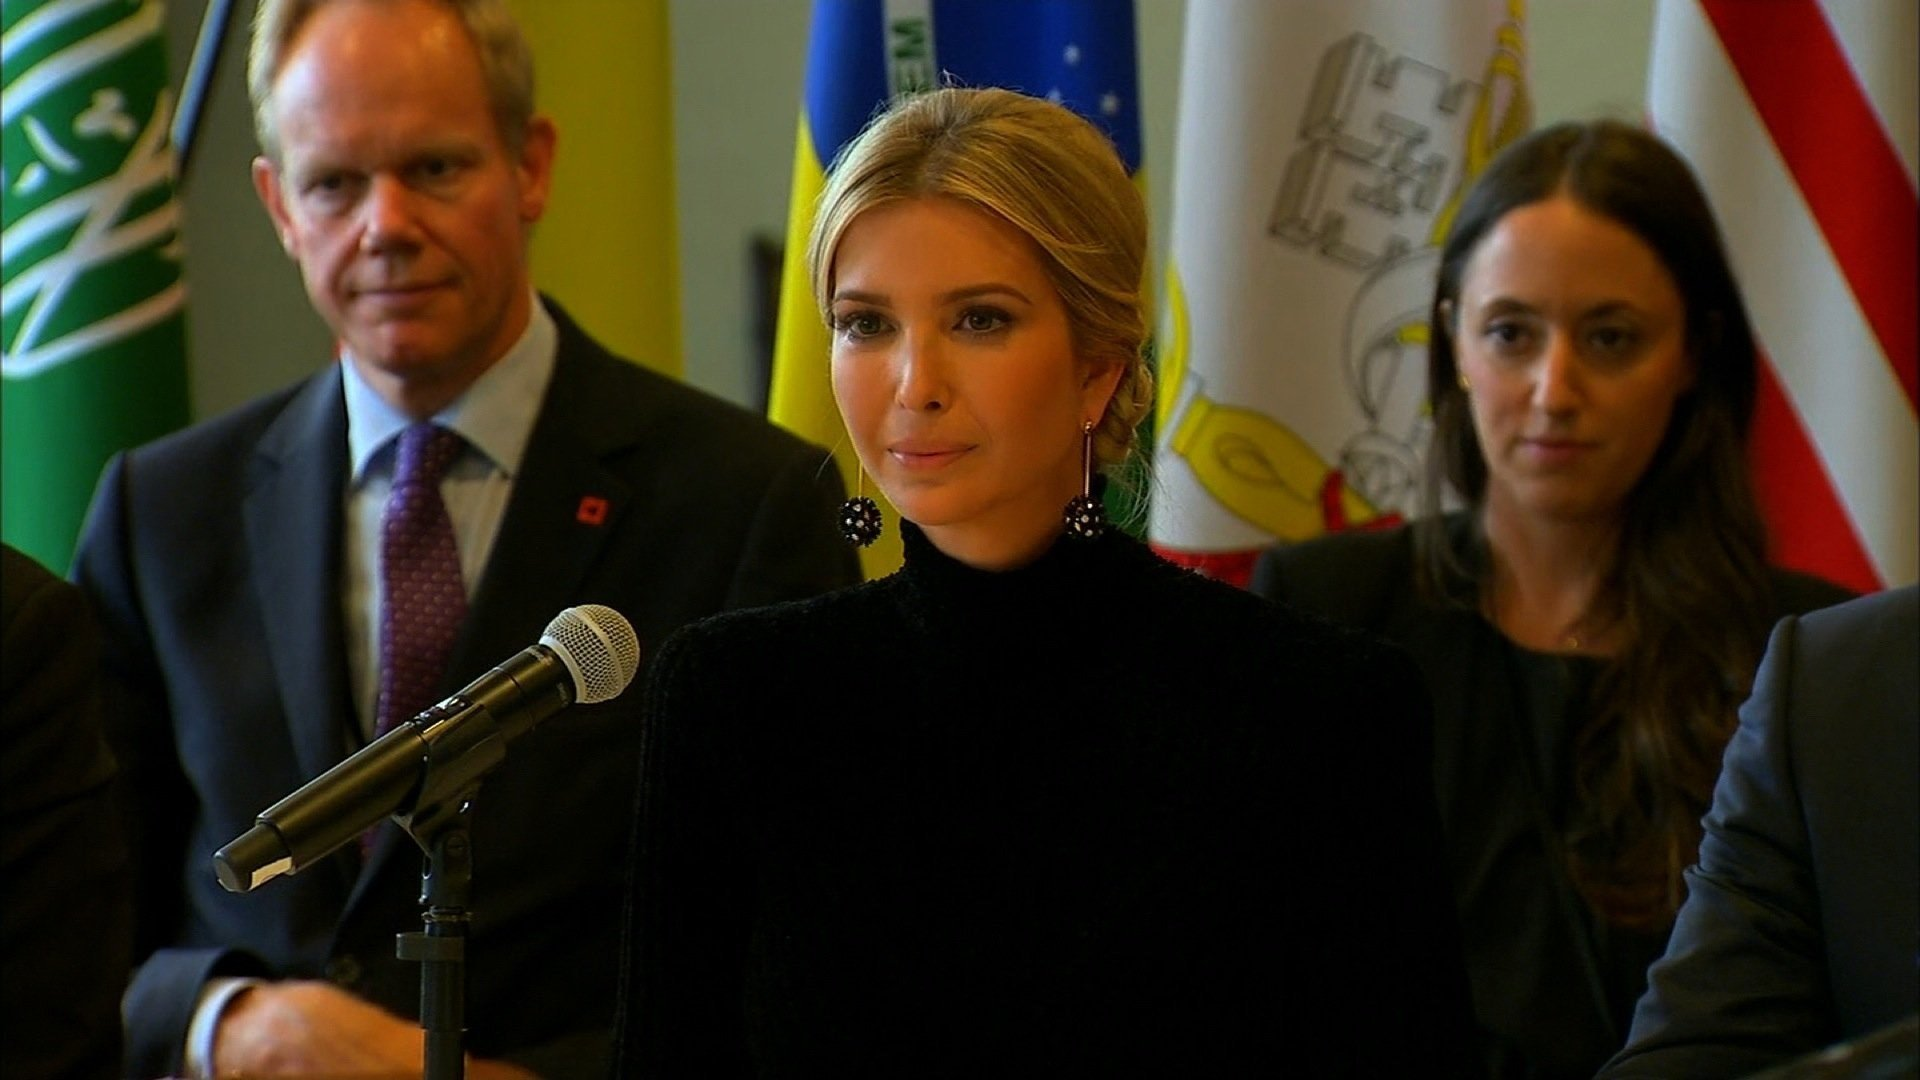 Ivanka Trump's battle against postpartum depression